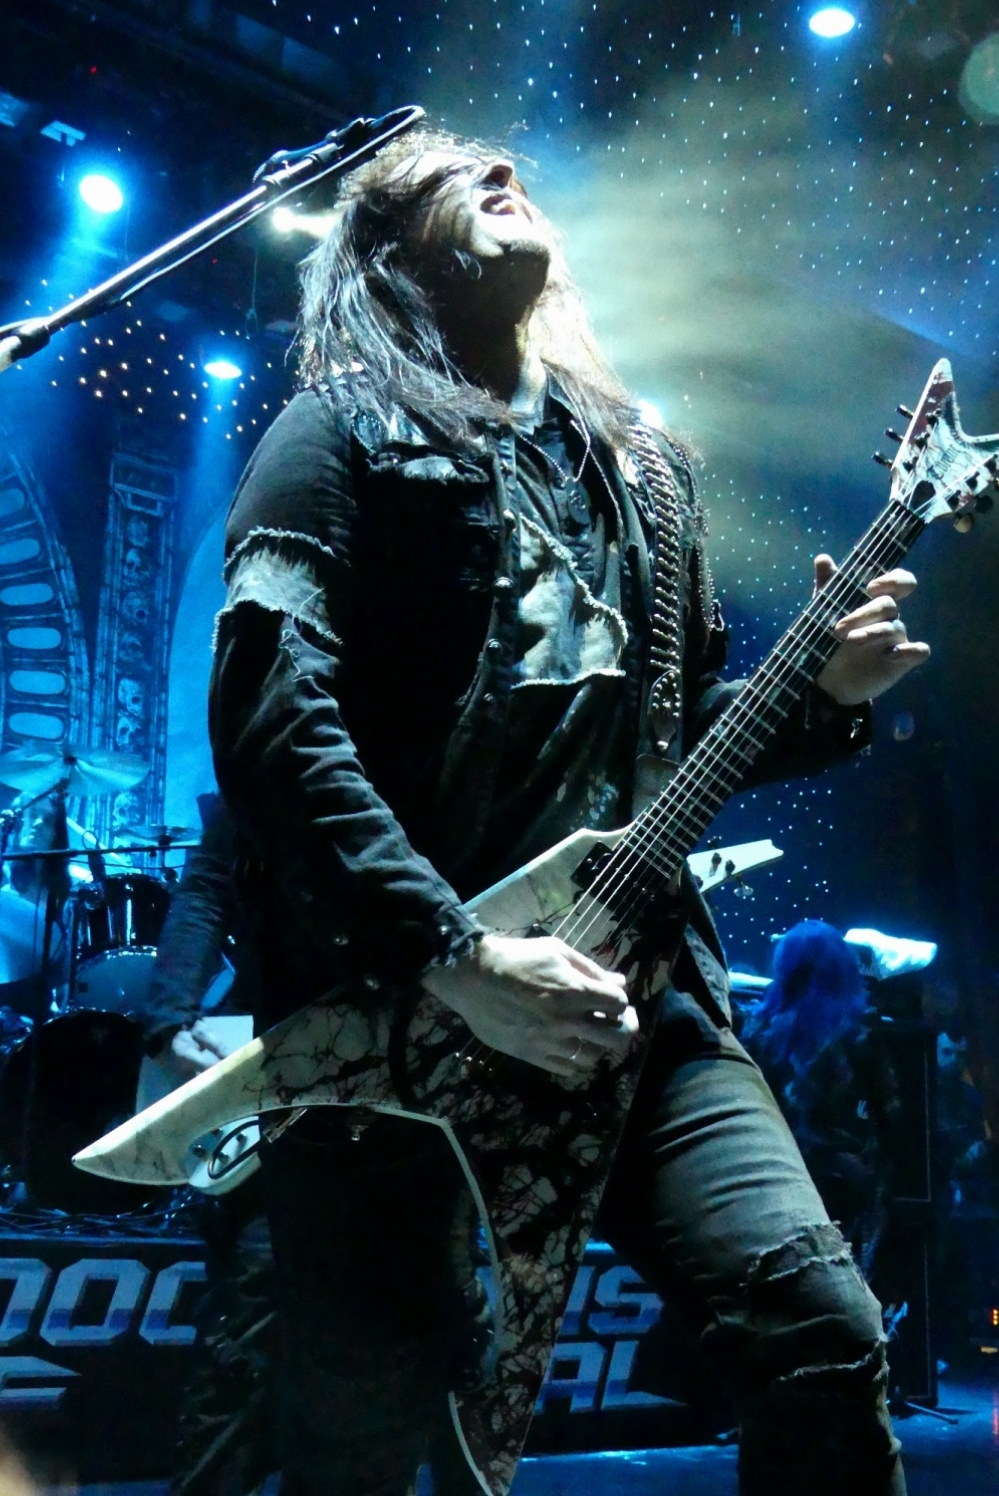 ARCH-ENEMY_70000-tons-of-metal-2017-vampster_11